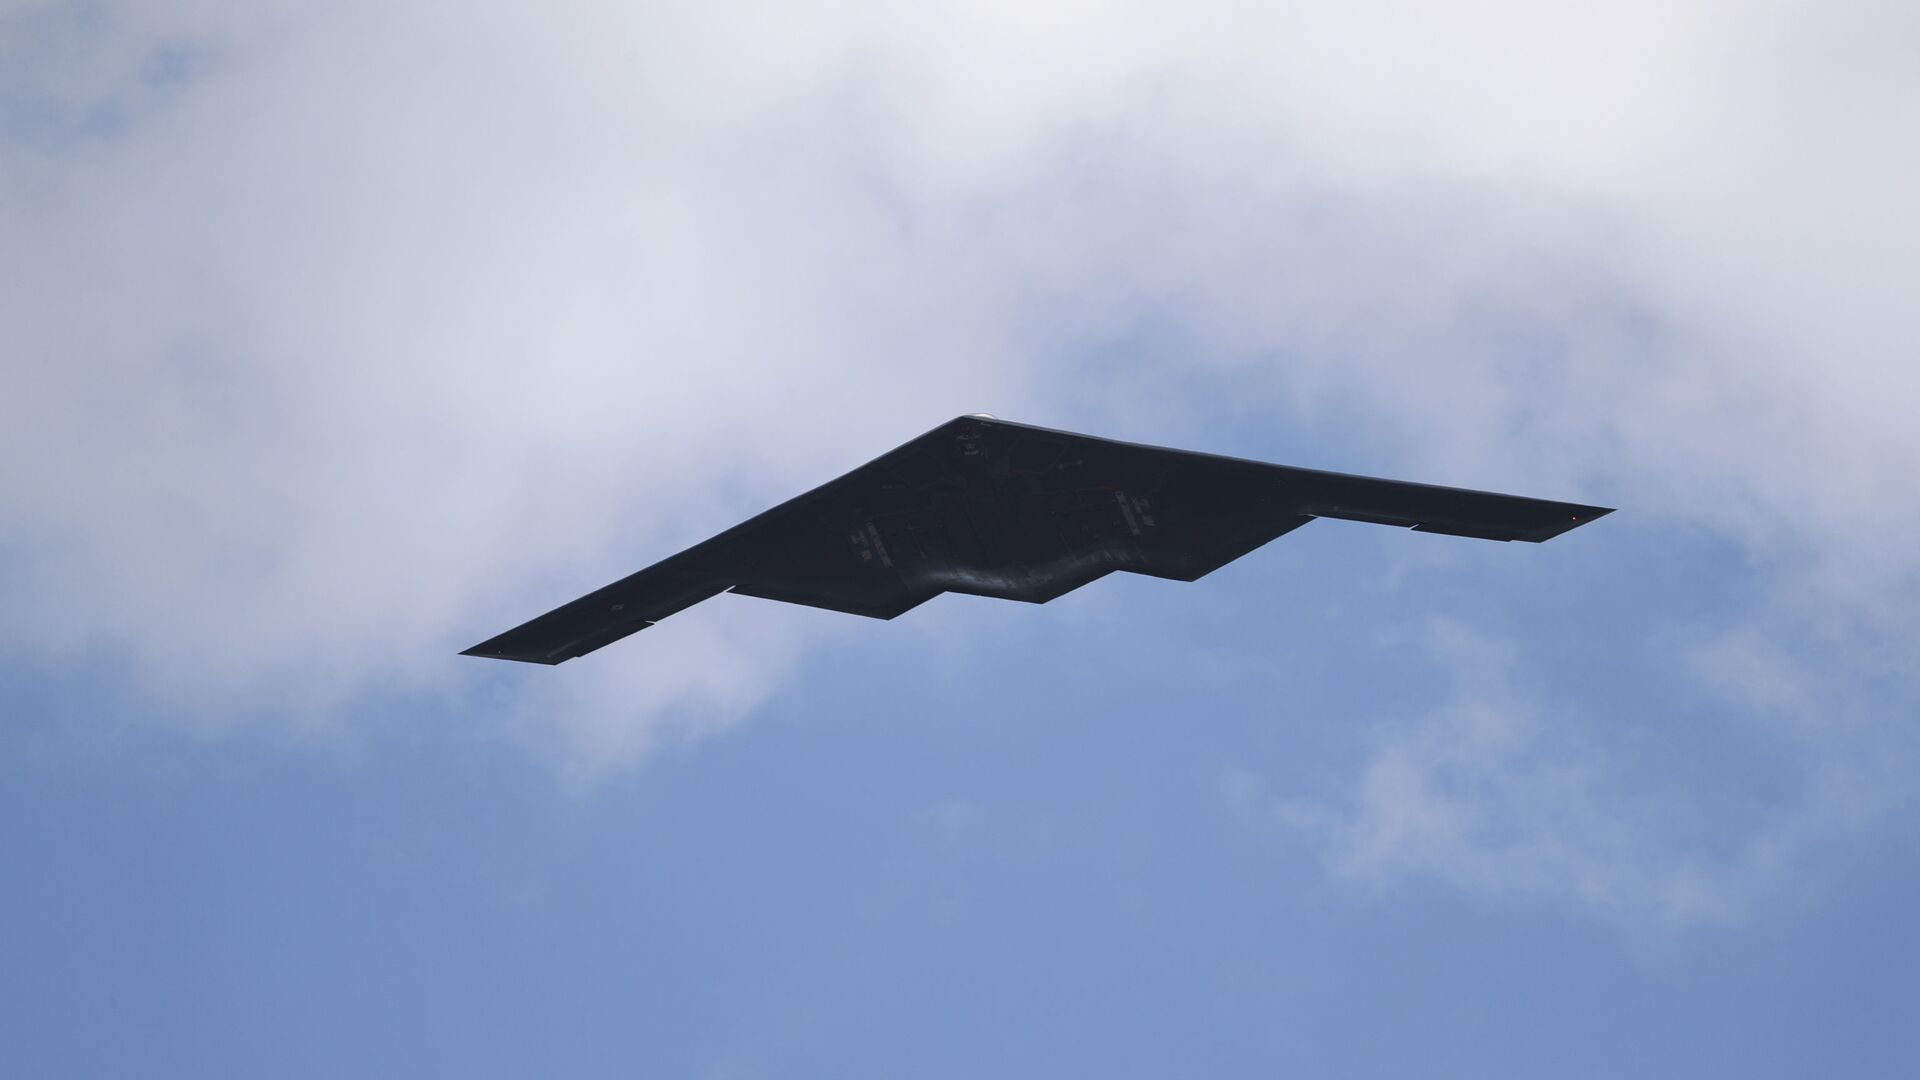 A B-2 Spirit stealth bomber, assigned to the 509th/131st Bomb Wings out of Whiteman Air Force Base, performs a flyover of Barnes-Jewish Hospital to honor healthcare professionals and essential employees fighting against the coronavirus Friday, May 8, 2020, in St. Louis.  - Sputnik International, 1920, 15.09.2021